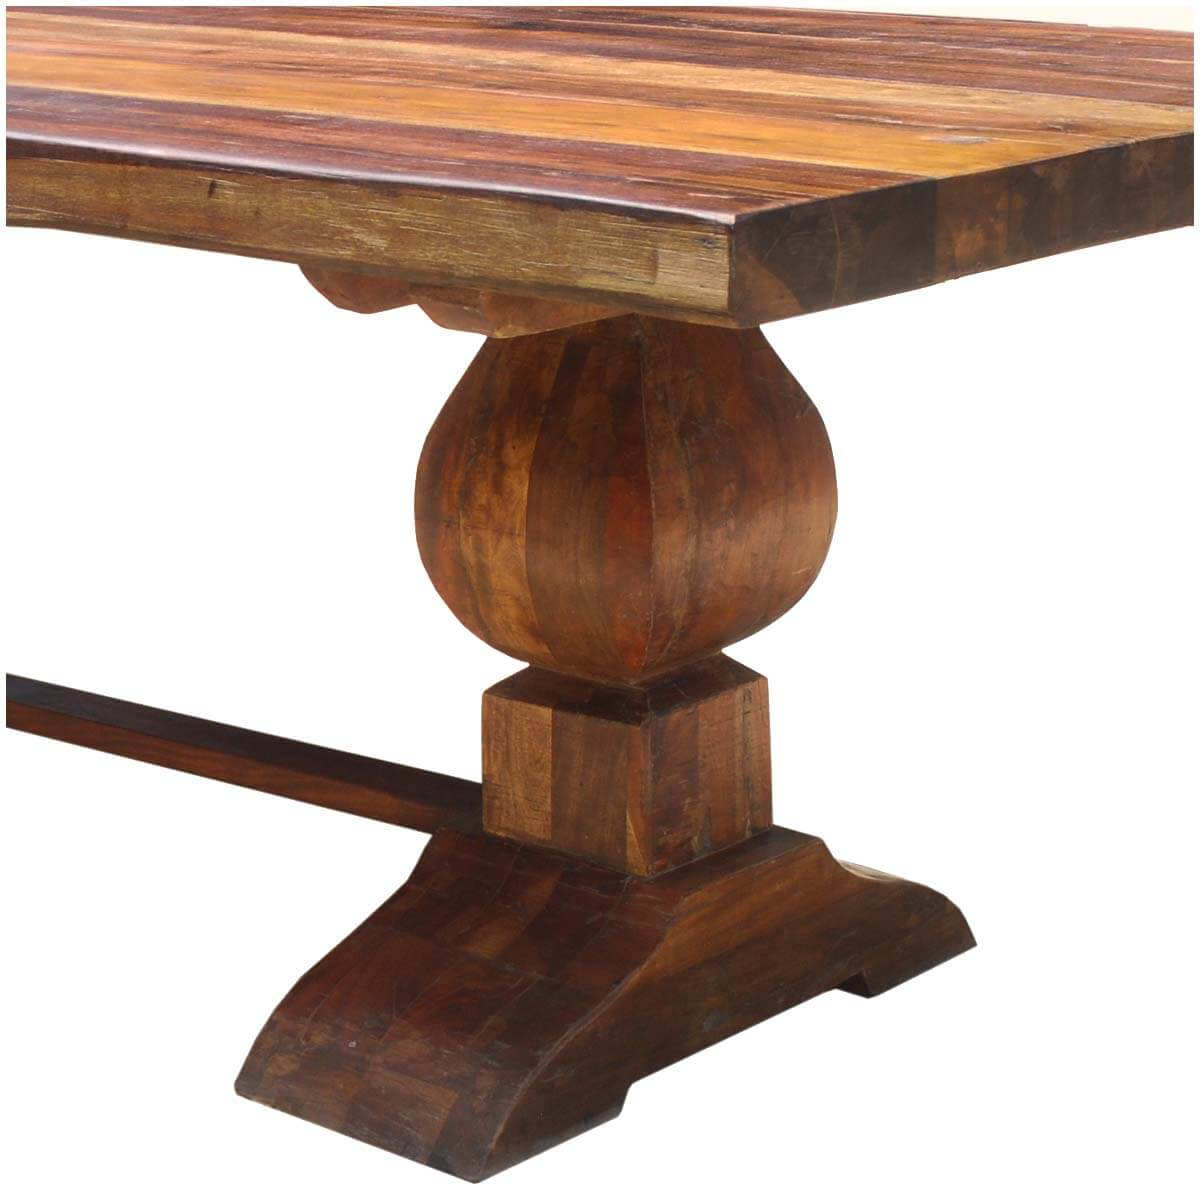 Double Pedestal Dining Room Table: Large Rustic Reclaimed Wood Double Trestle Pedestal Dining